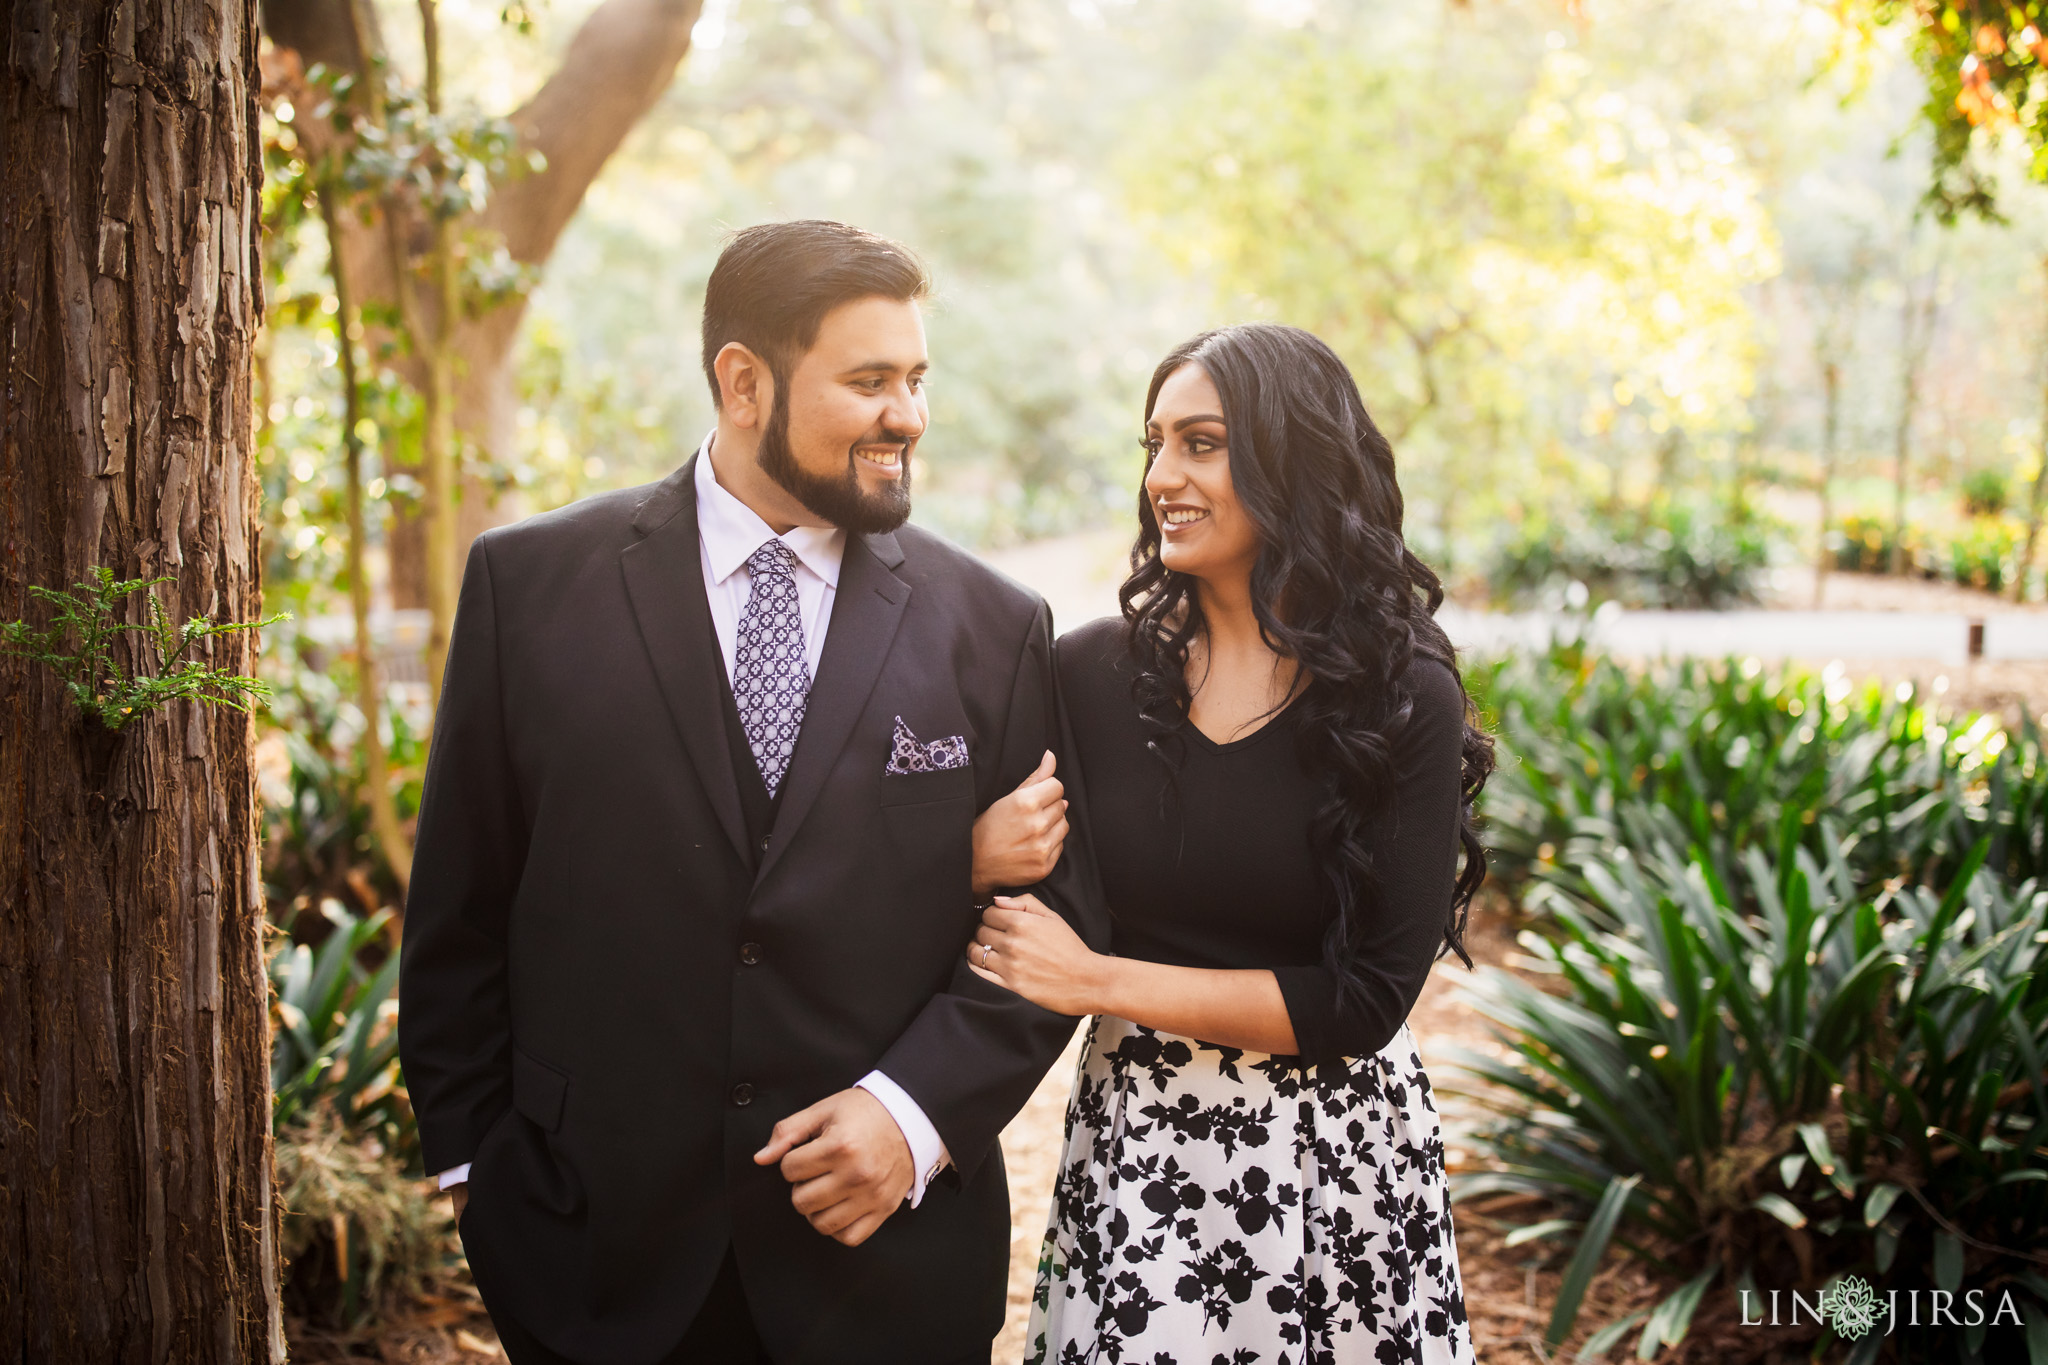 006 descanso gardens los angeles county engagement session